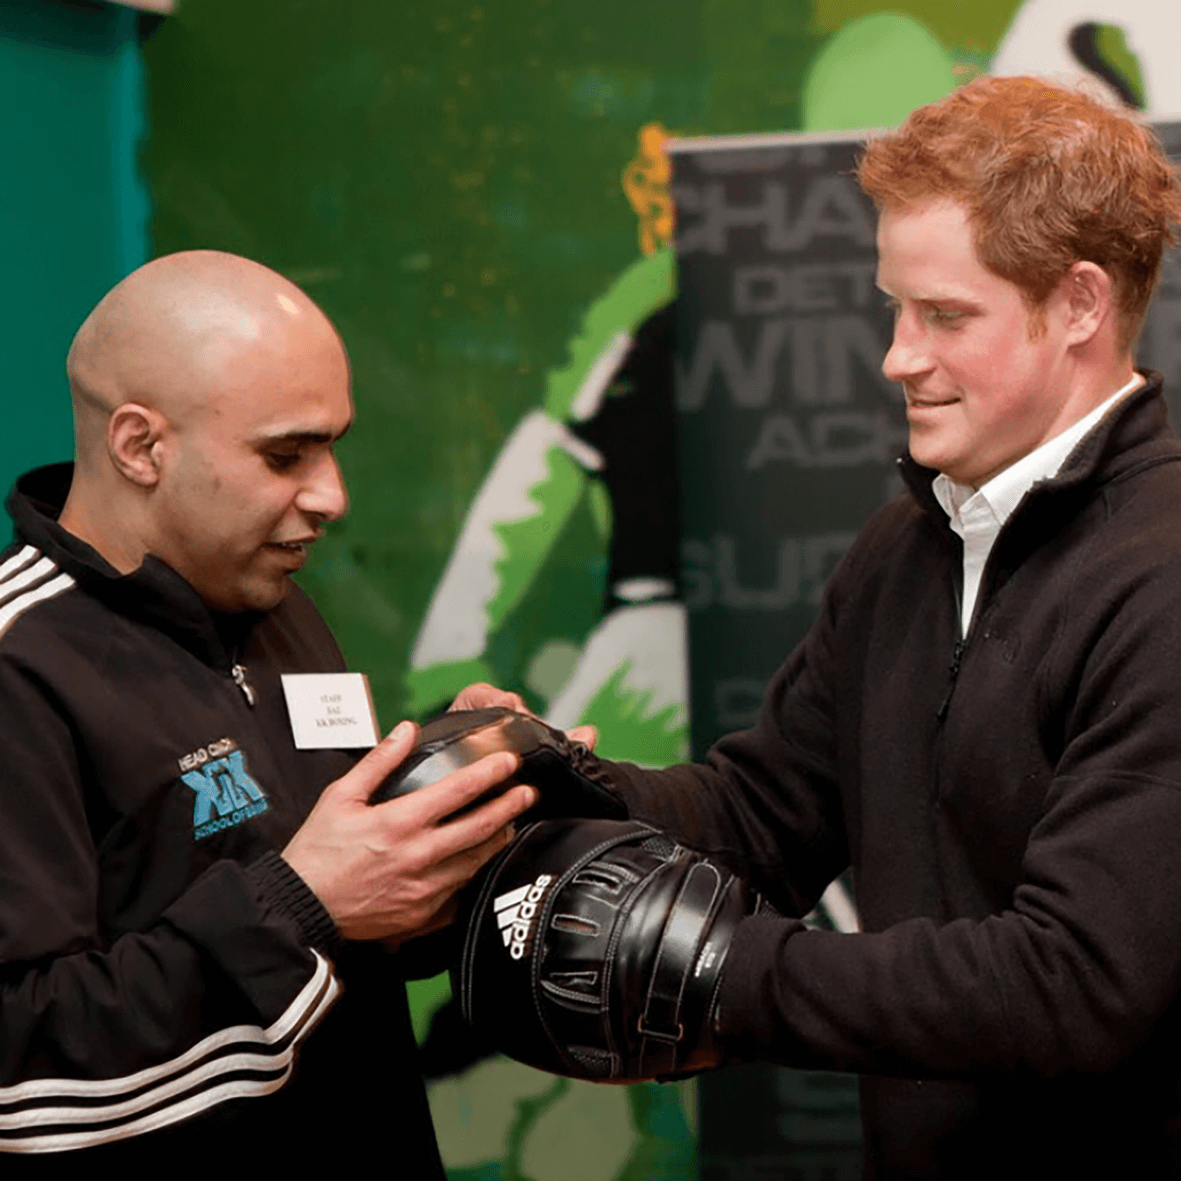 marcellus-baz-and-prince-harry